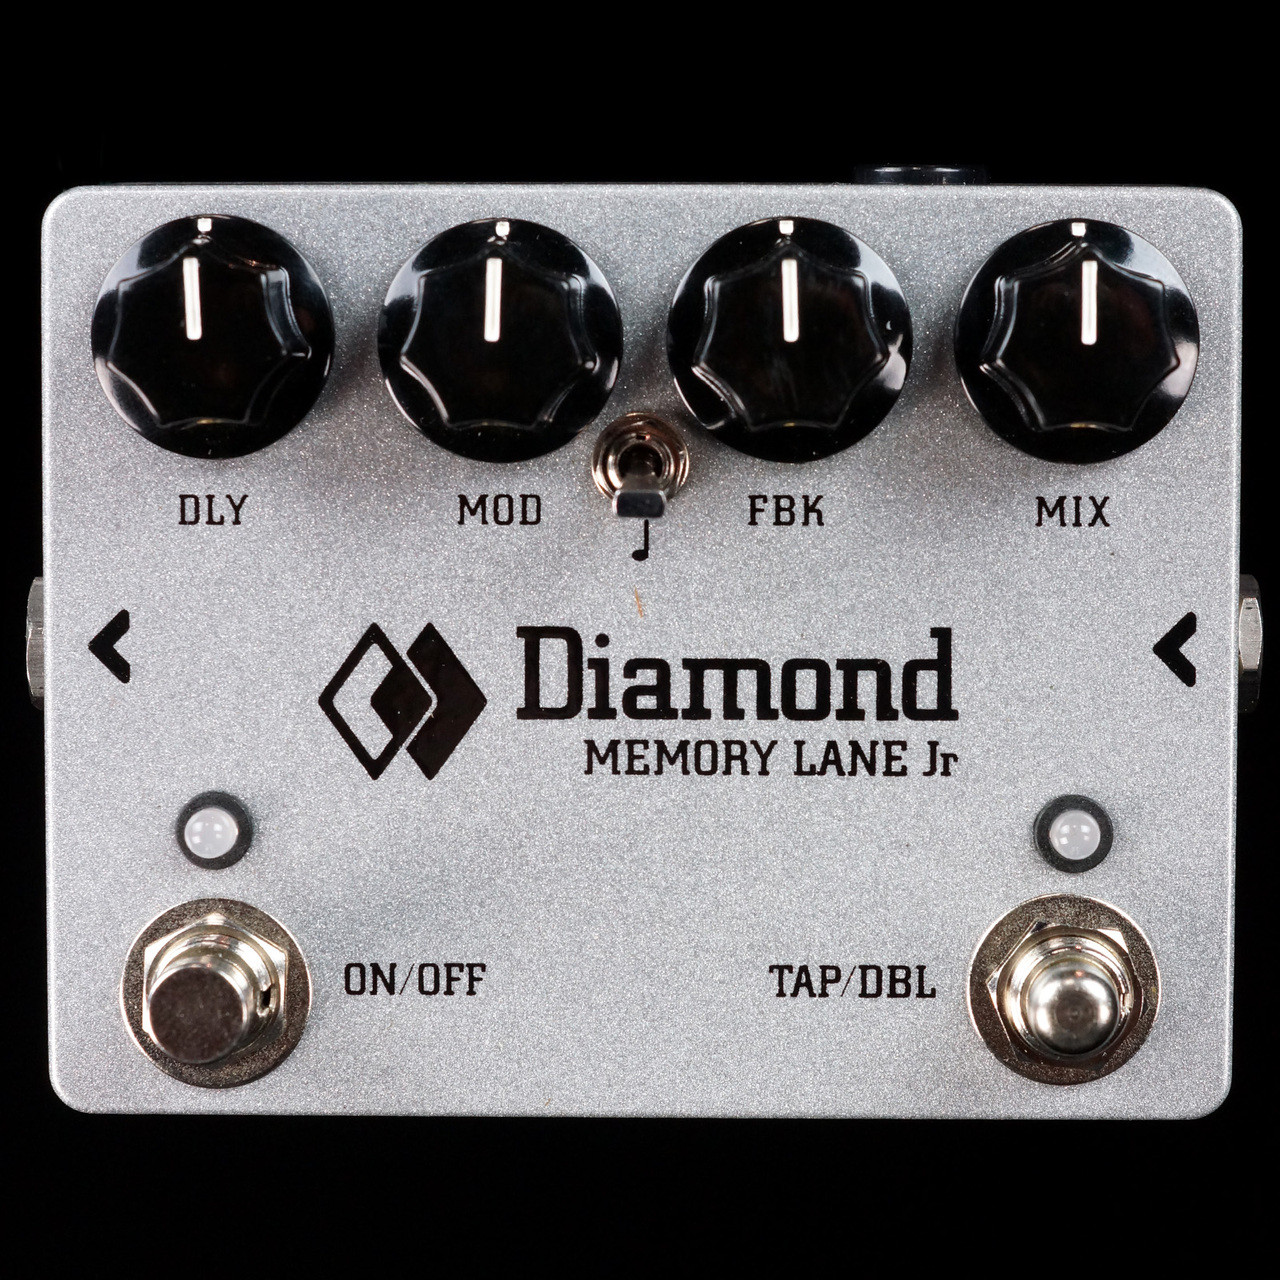 Fairfield Circuitry Meet Maude Analog Delay Guitar Effects Pedal Image